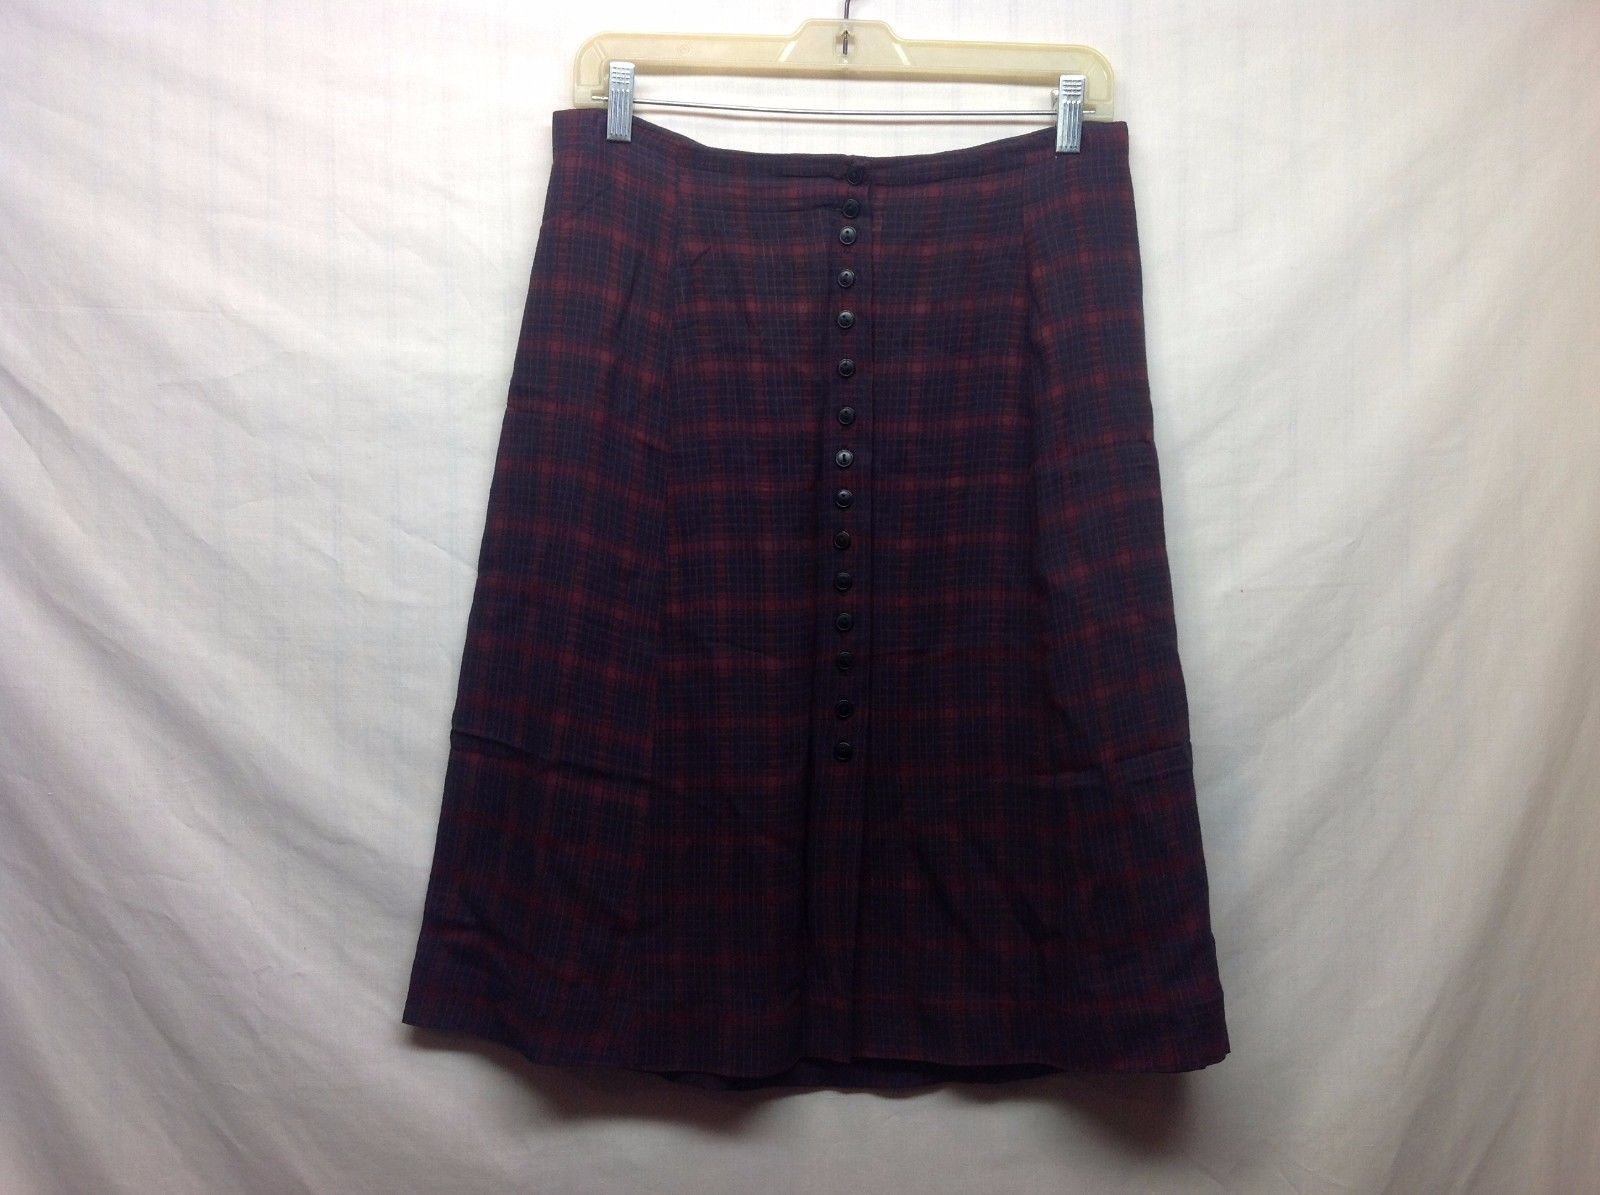 Cristina Maroon and Dark Navy Blue Plaid Front Button Skirt